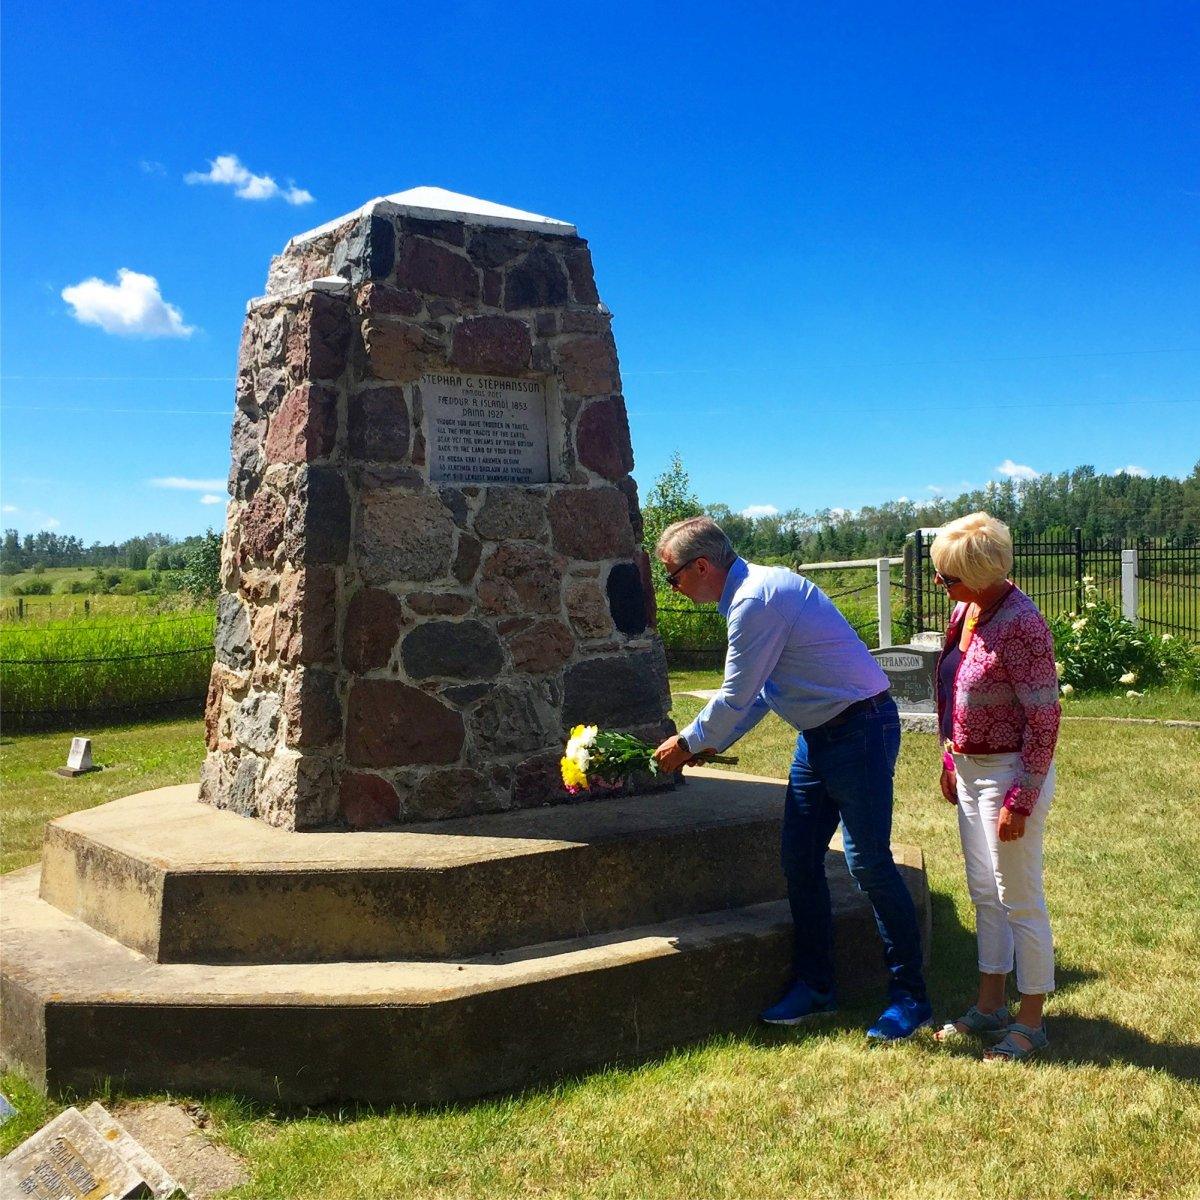 Jón Atli, rector, and his wife, Stefanía, laid flowers from the University of Iceland on his grave